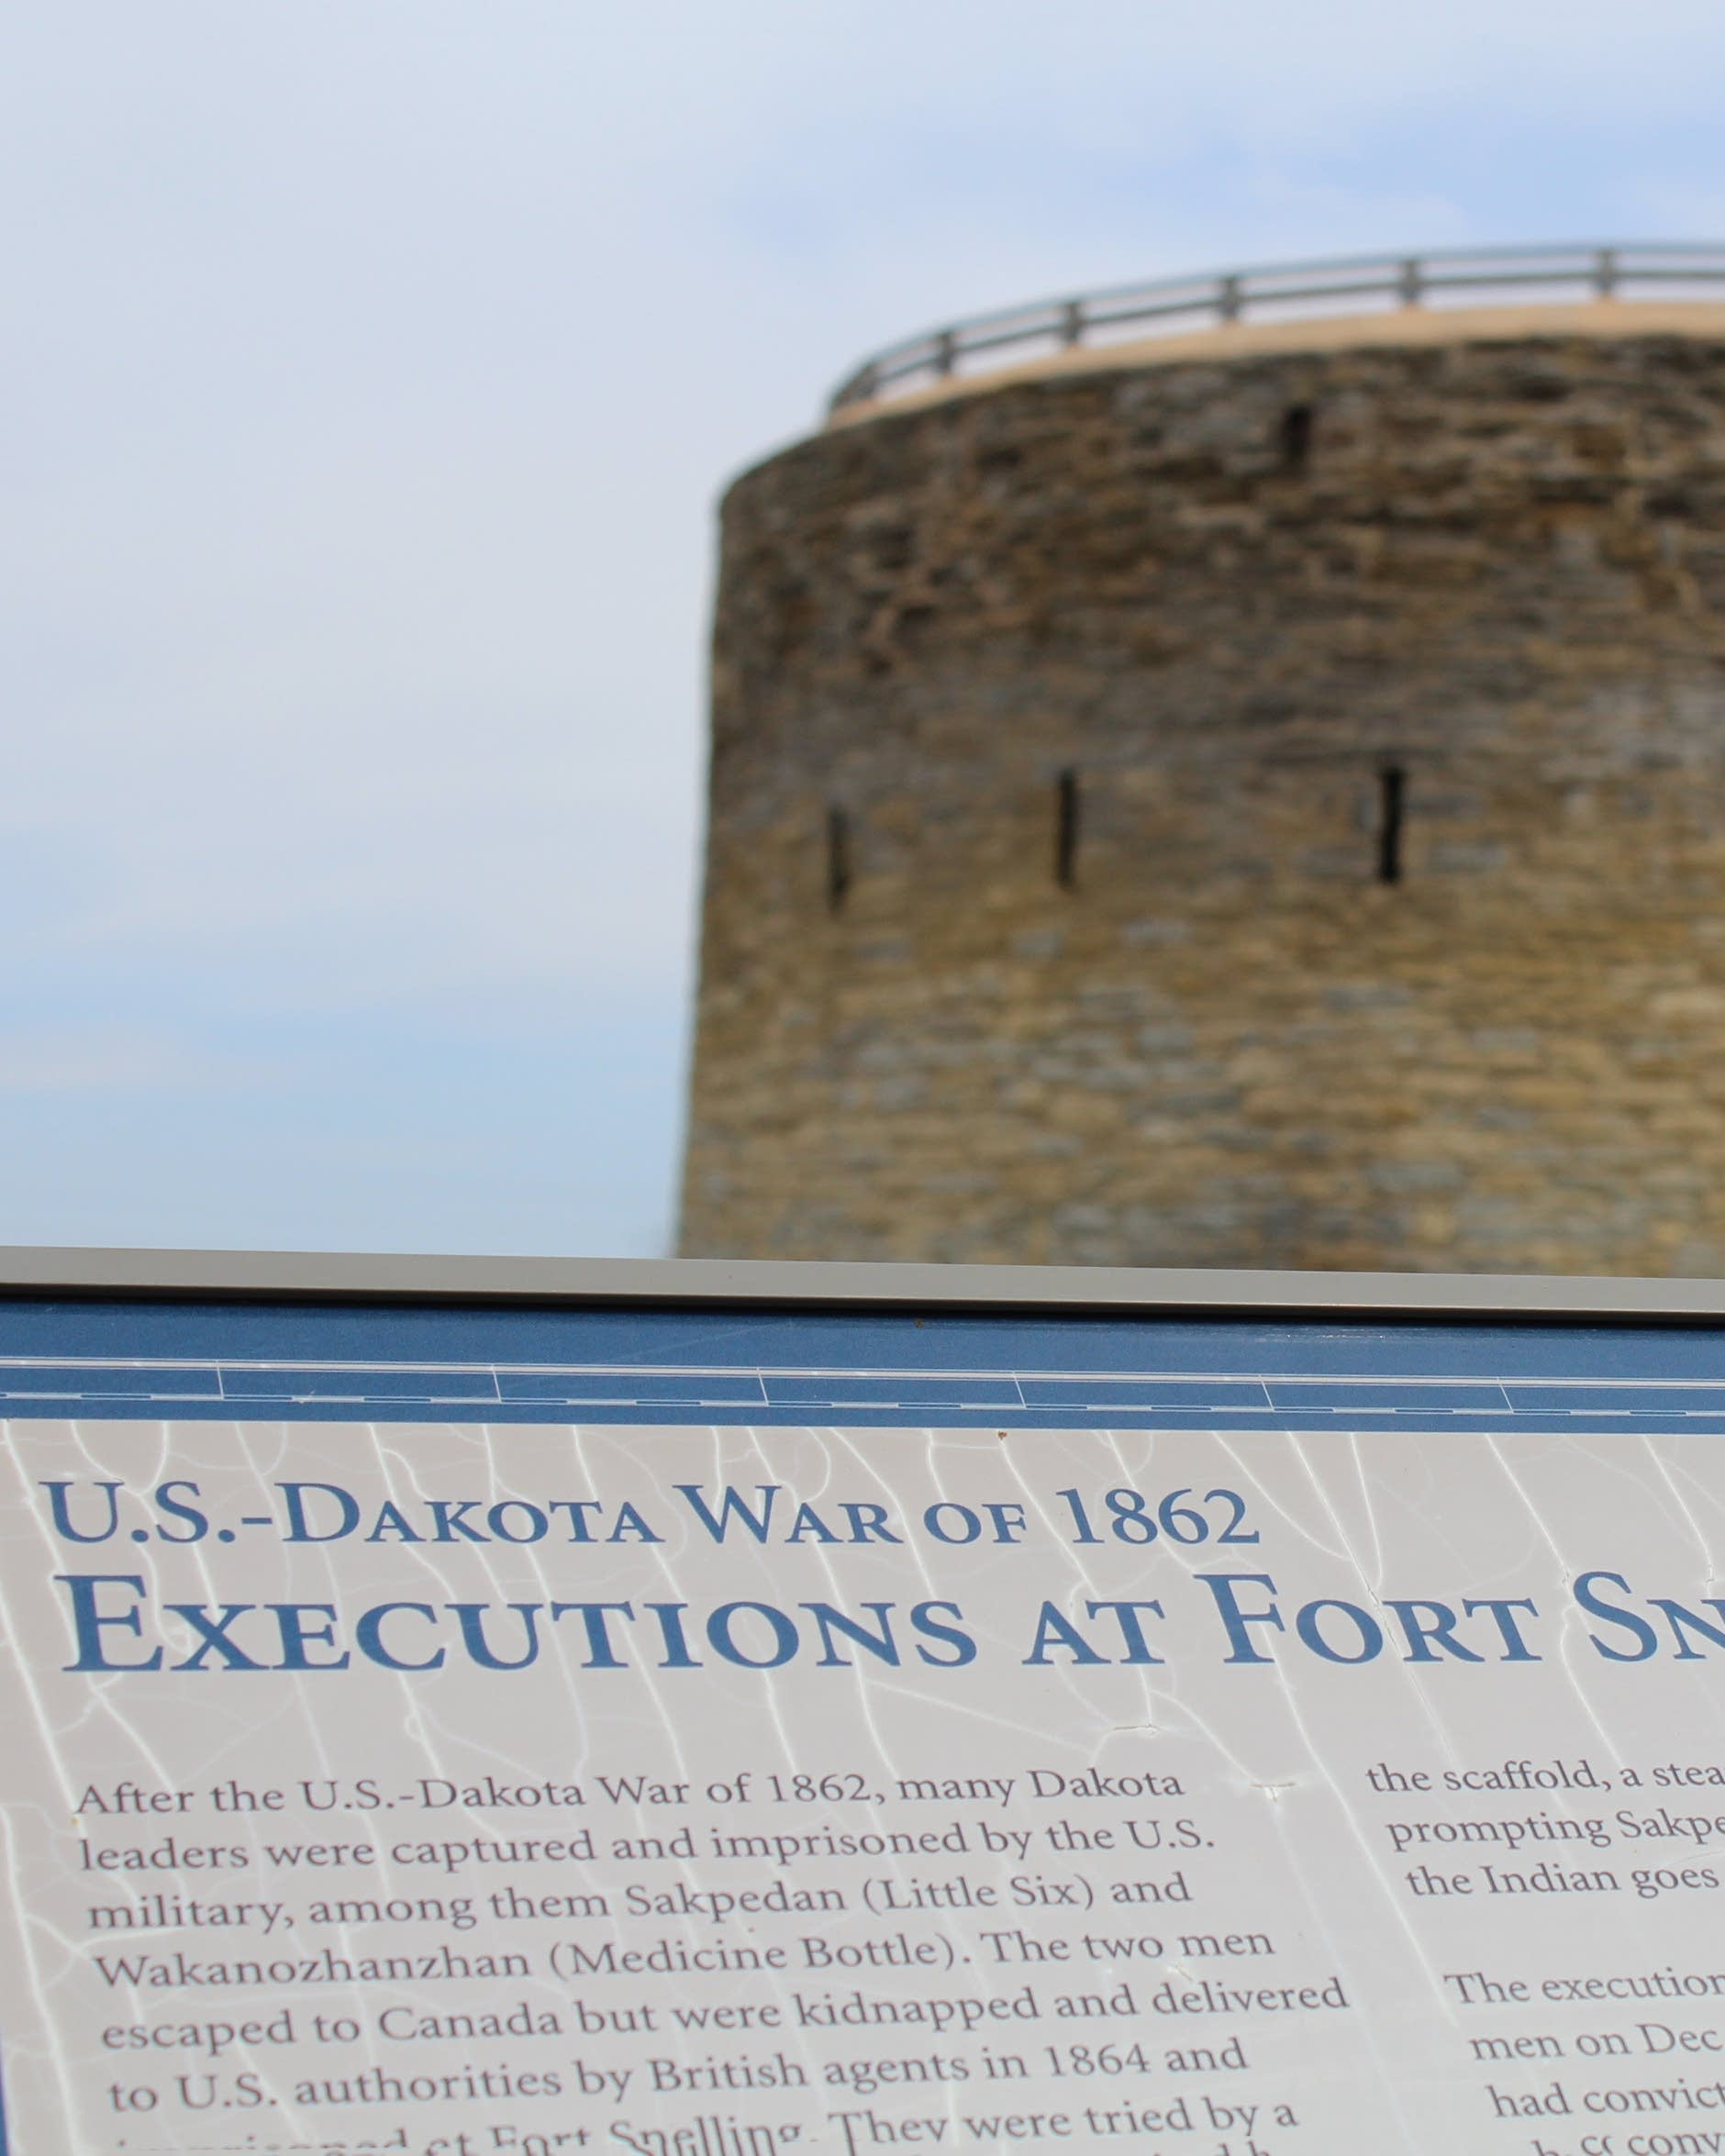 Dakota aim to reclaim Fort Snelling and its difficult history | MPR News